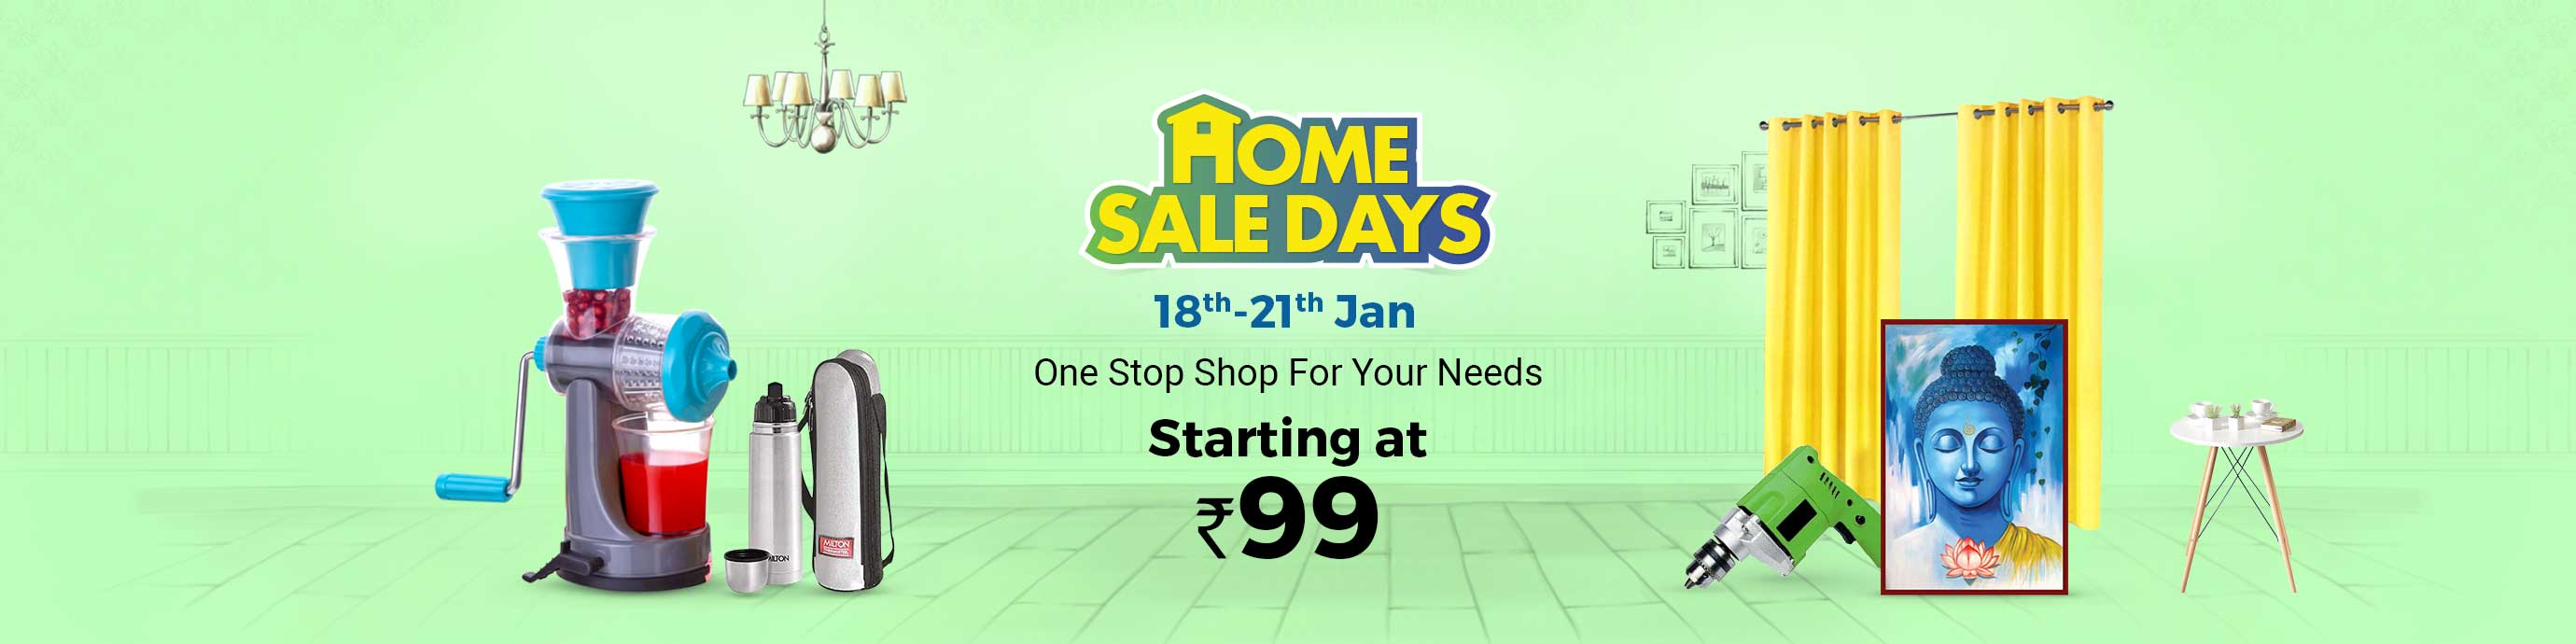 ShopClues.com - Home Sale Days – Home and Kitchen Products starting at just ₹99